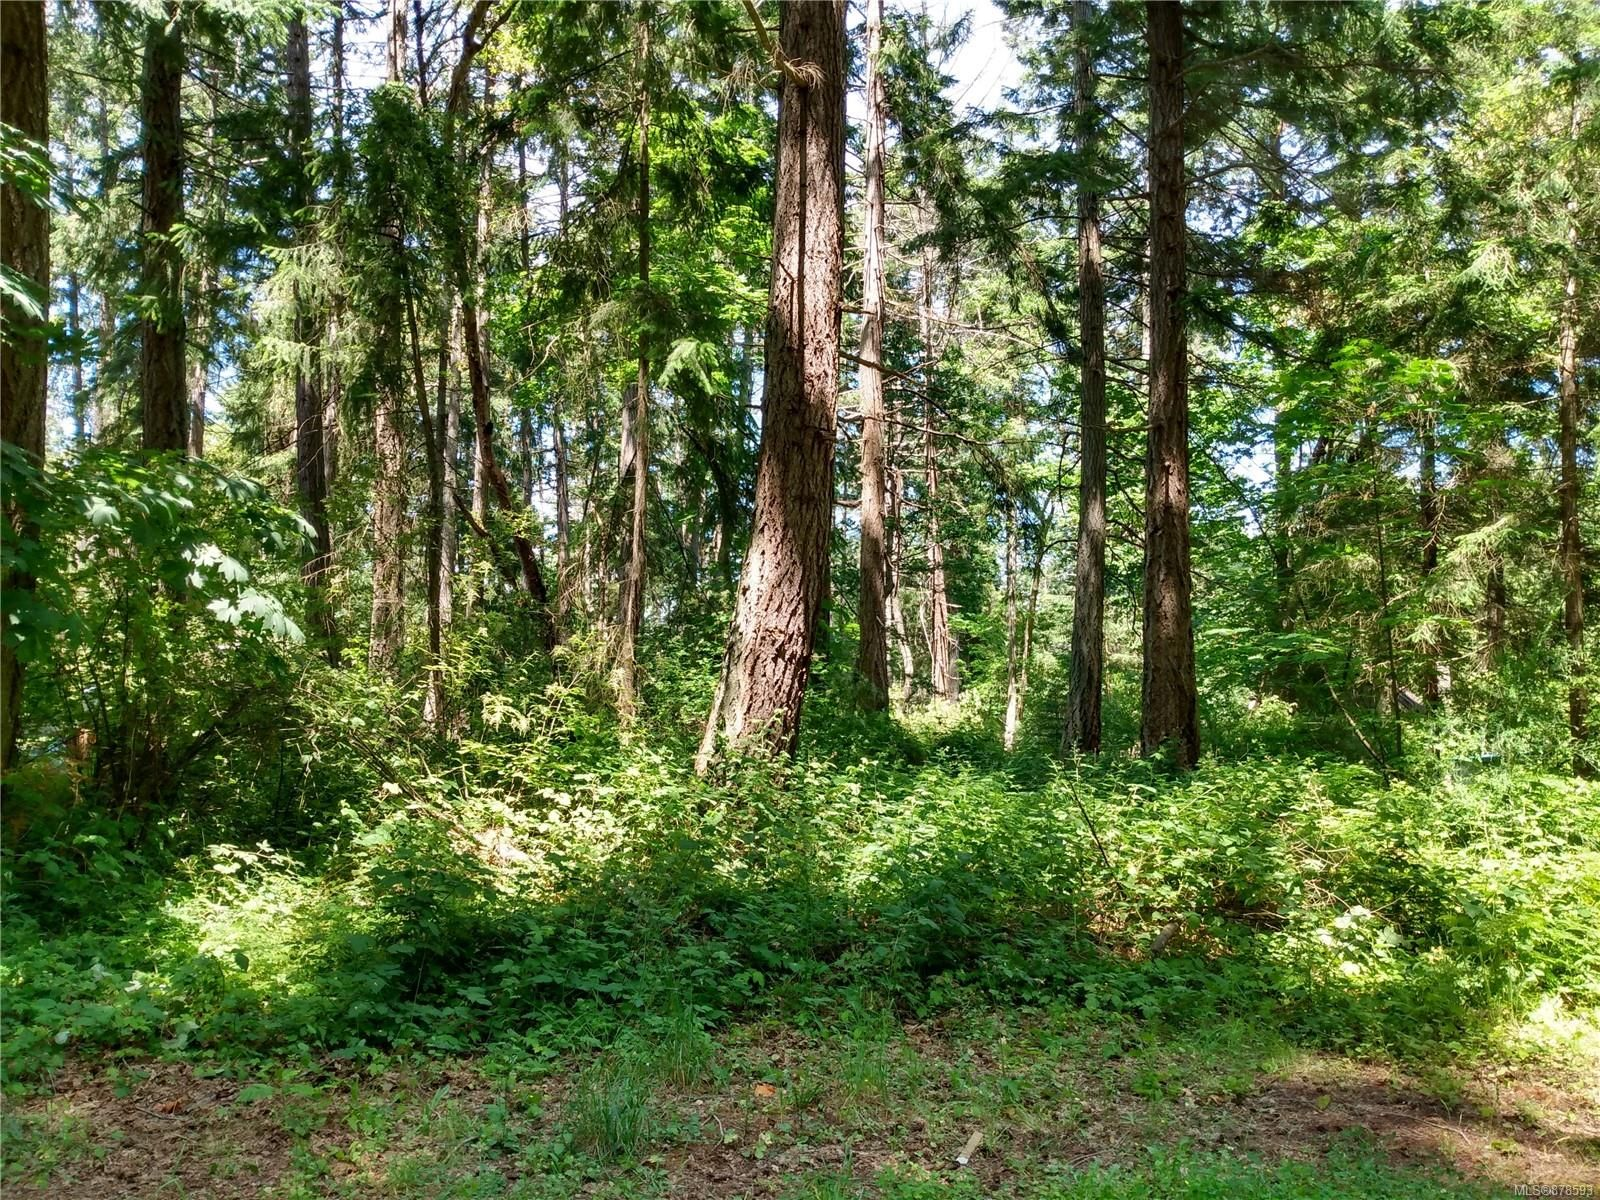 Main Photo: 20 Pirate Pl in : Isl Protection Island Land for sale (Islands)  : MLS®# 878593